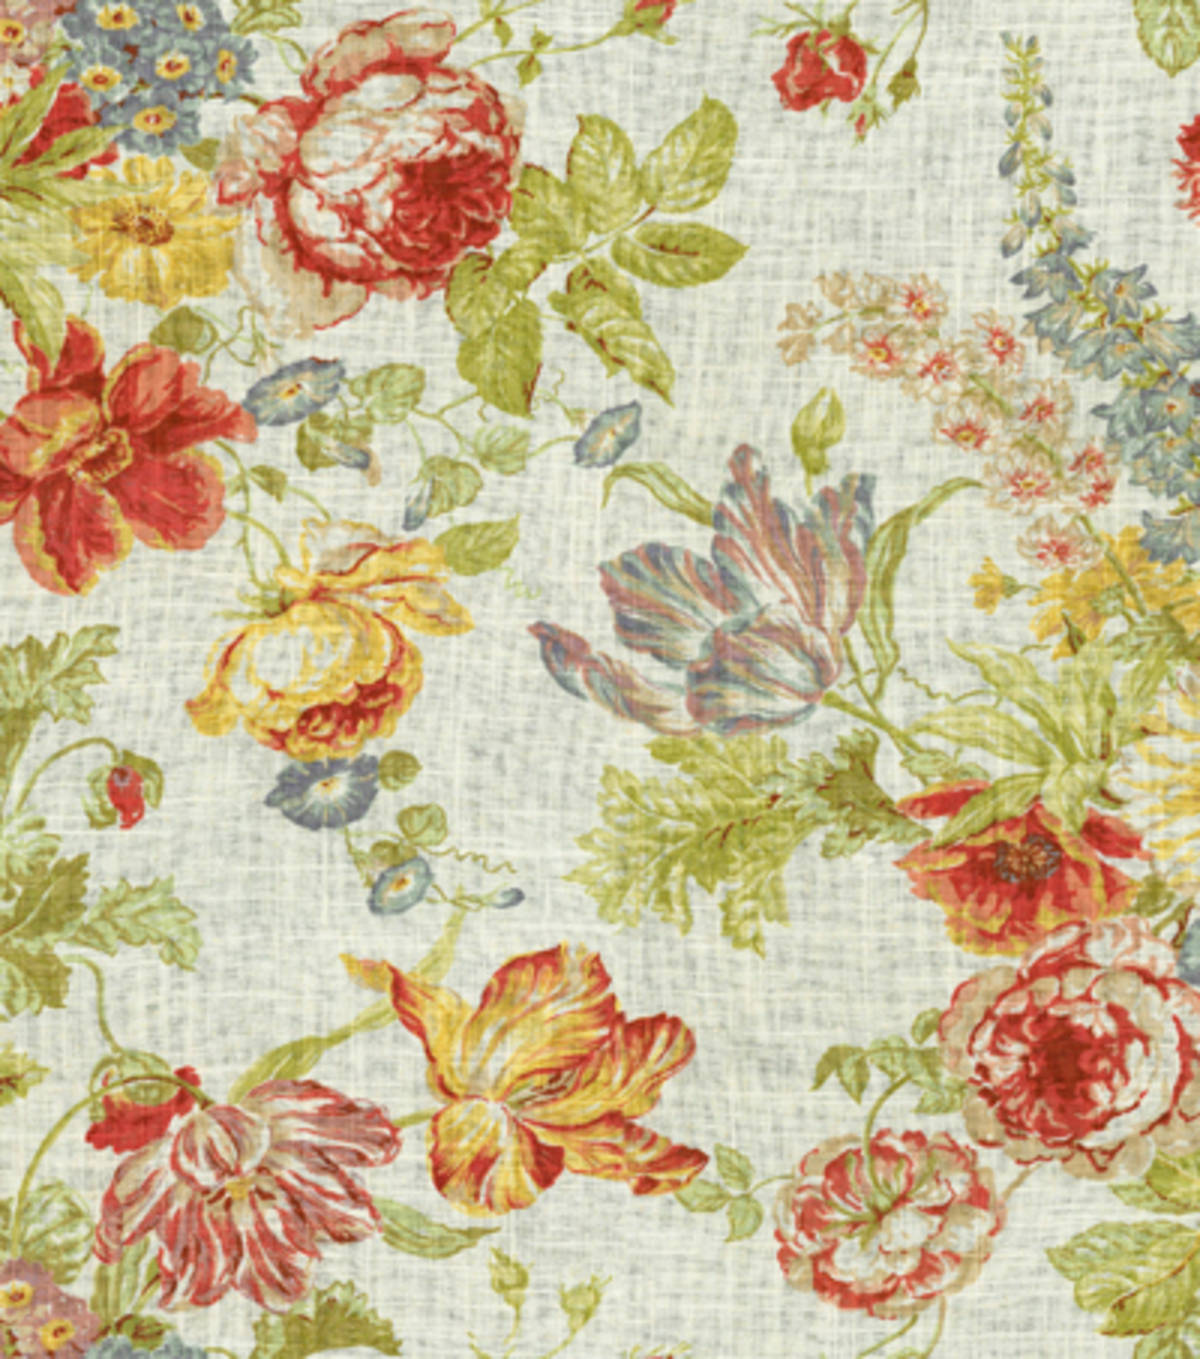 Home Decor 8\u0022x8\u0022 Fabric Swatch-Covington Blanchette